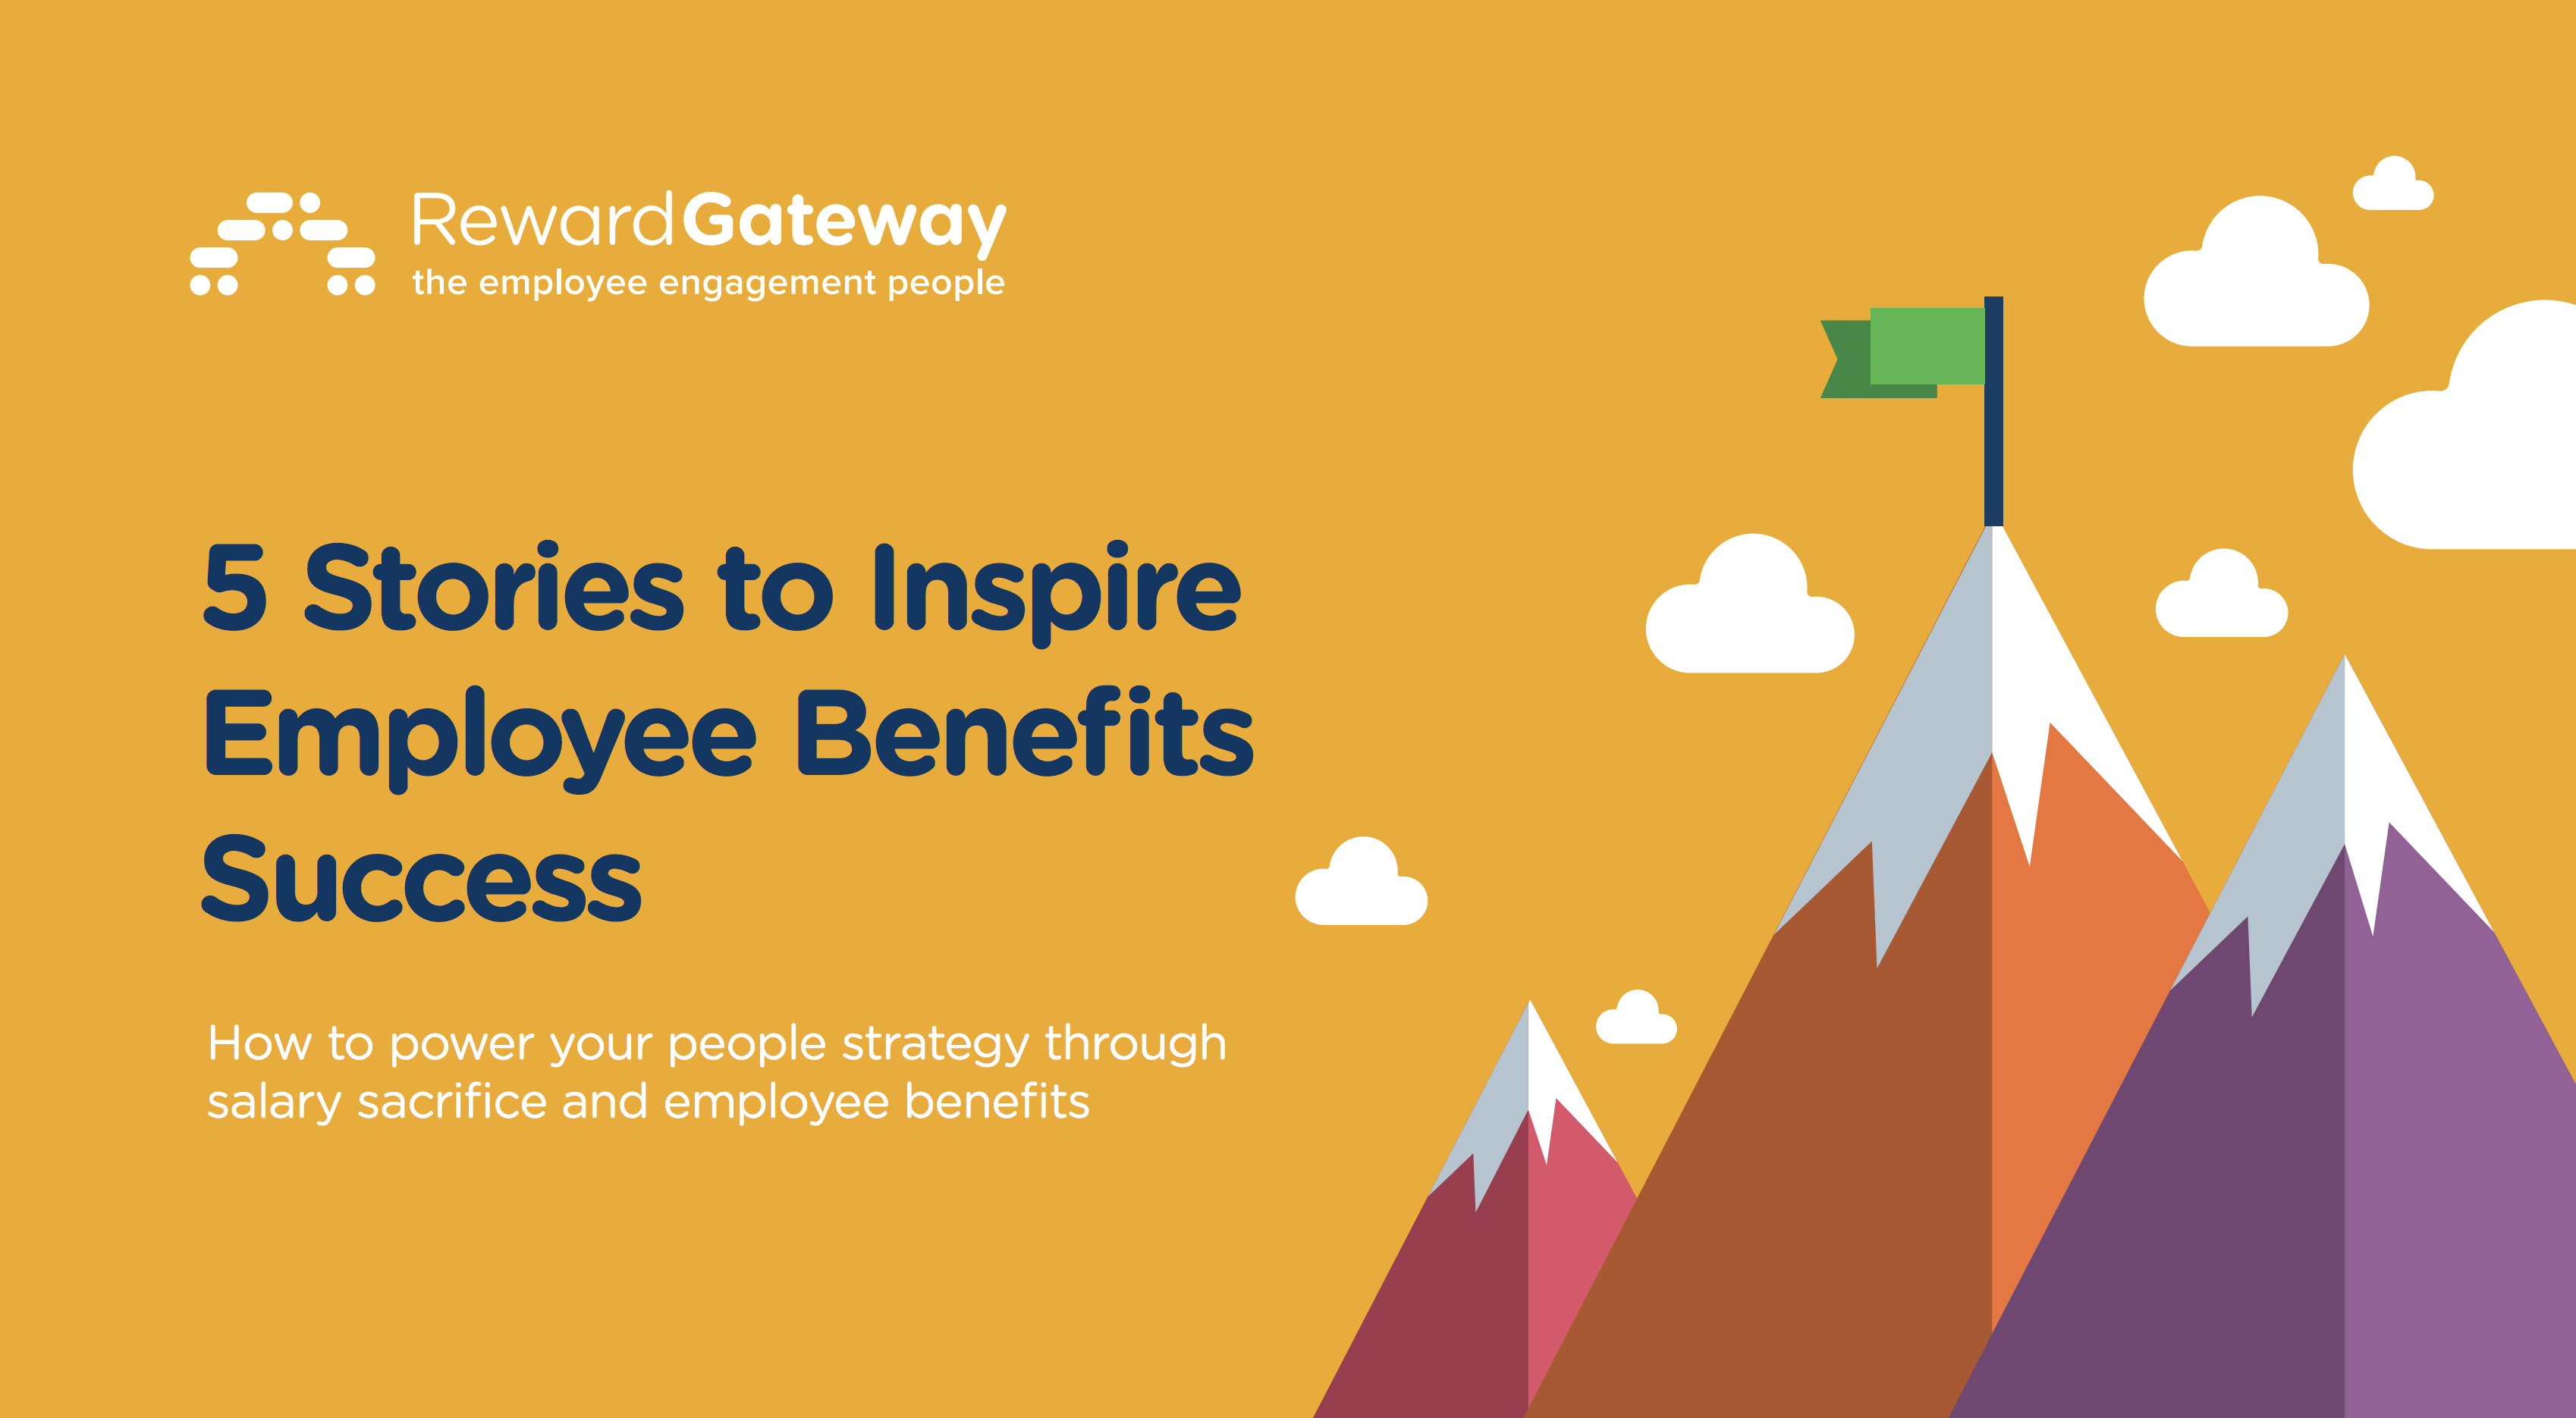 How to make employee benefits successful